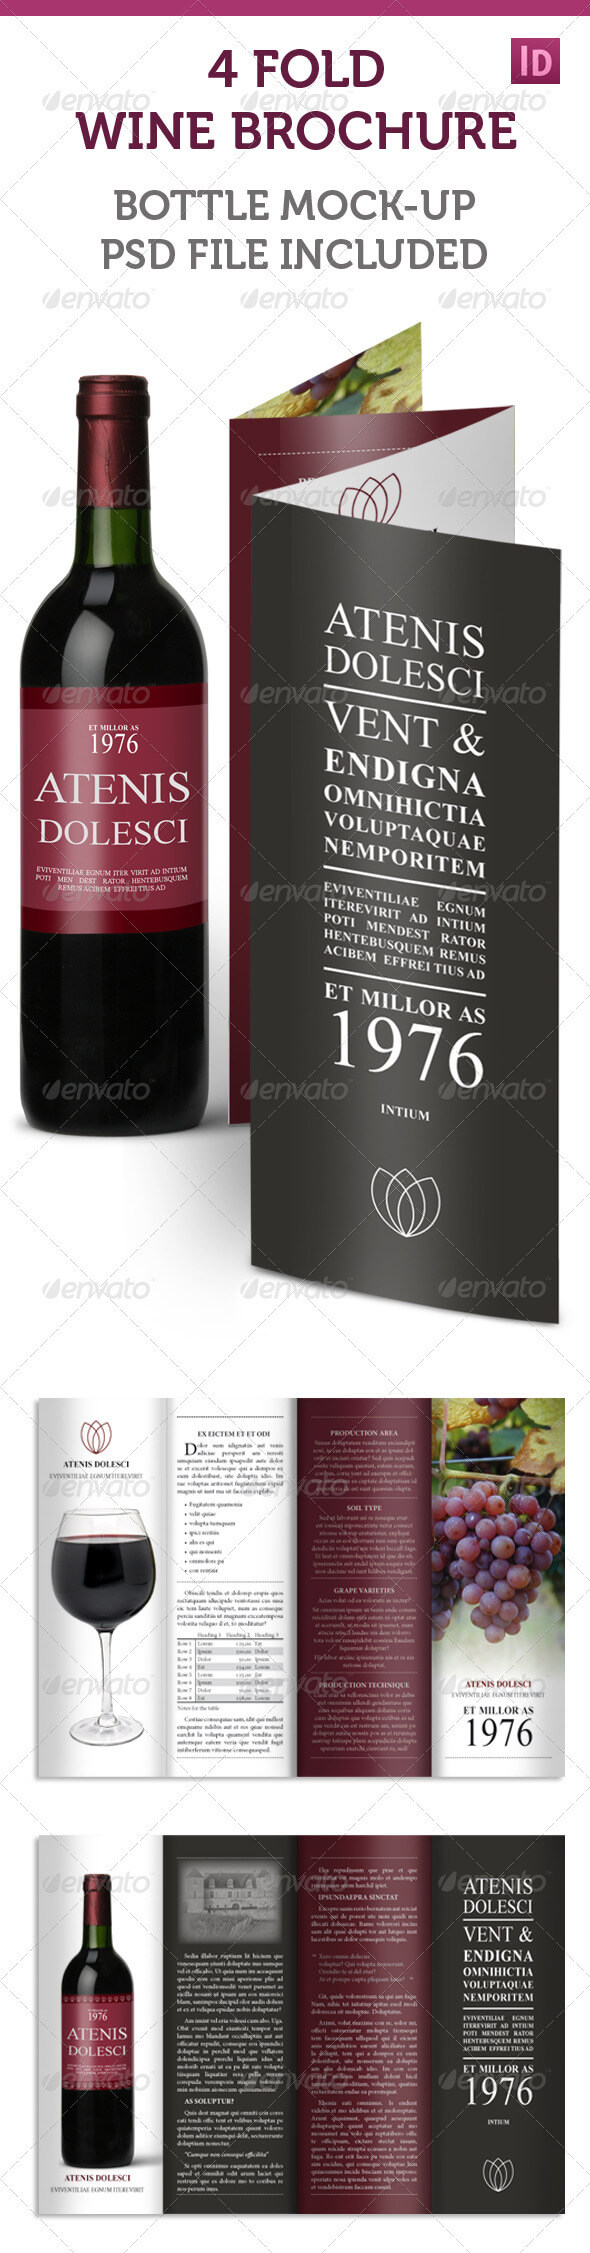 Wine Brochure Templates From Graphicriver Inside Wine Brochure Template